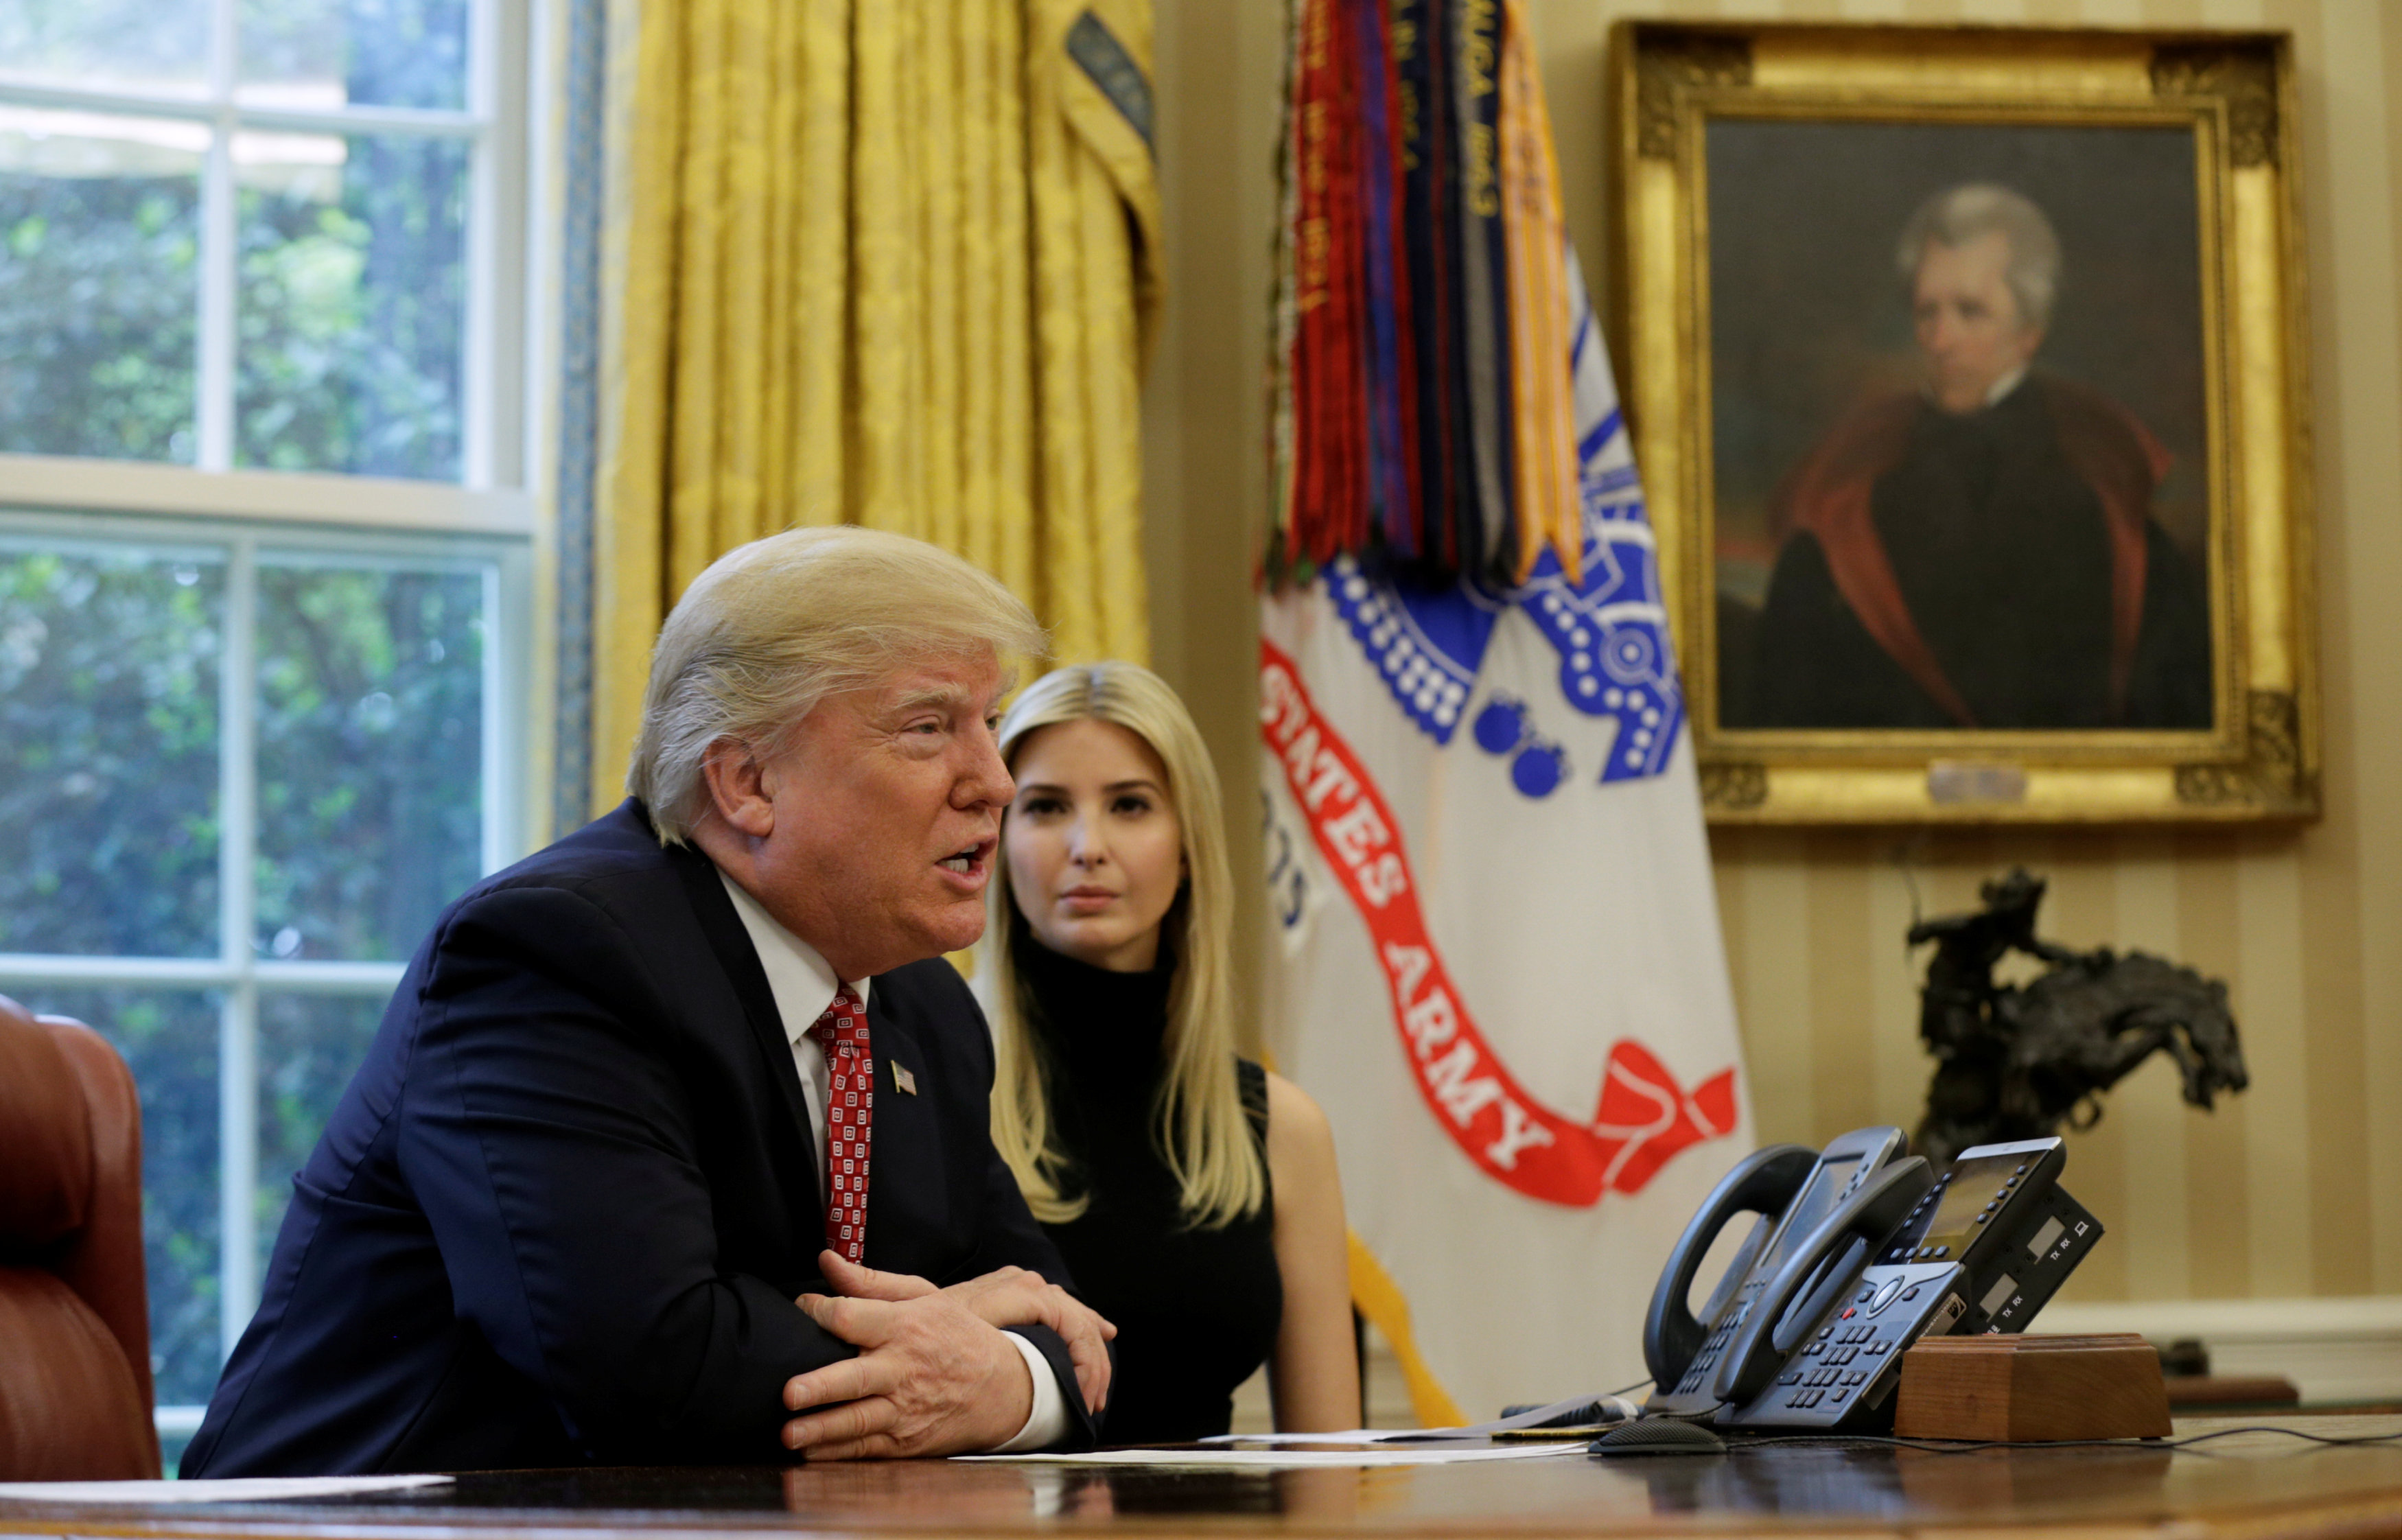 U.S. President Donald Trump and his daughter Ivanka hold a video conference call with Commander Peggy Whitson and Flight Engineer Jack Fischer of NASA on the International Space Station from the Oval Office of the White House in Washington, U.S., April 24, 2017